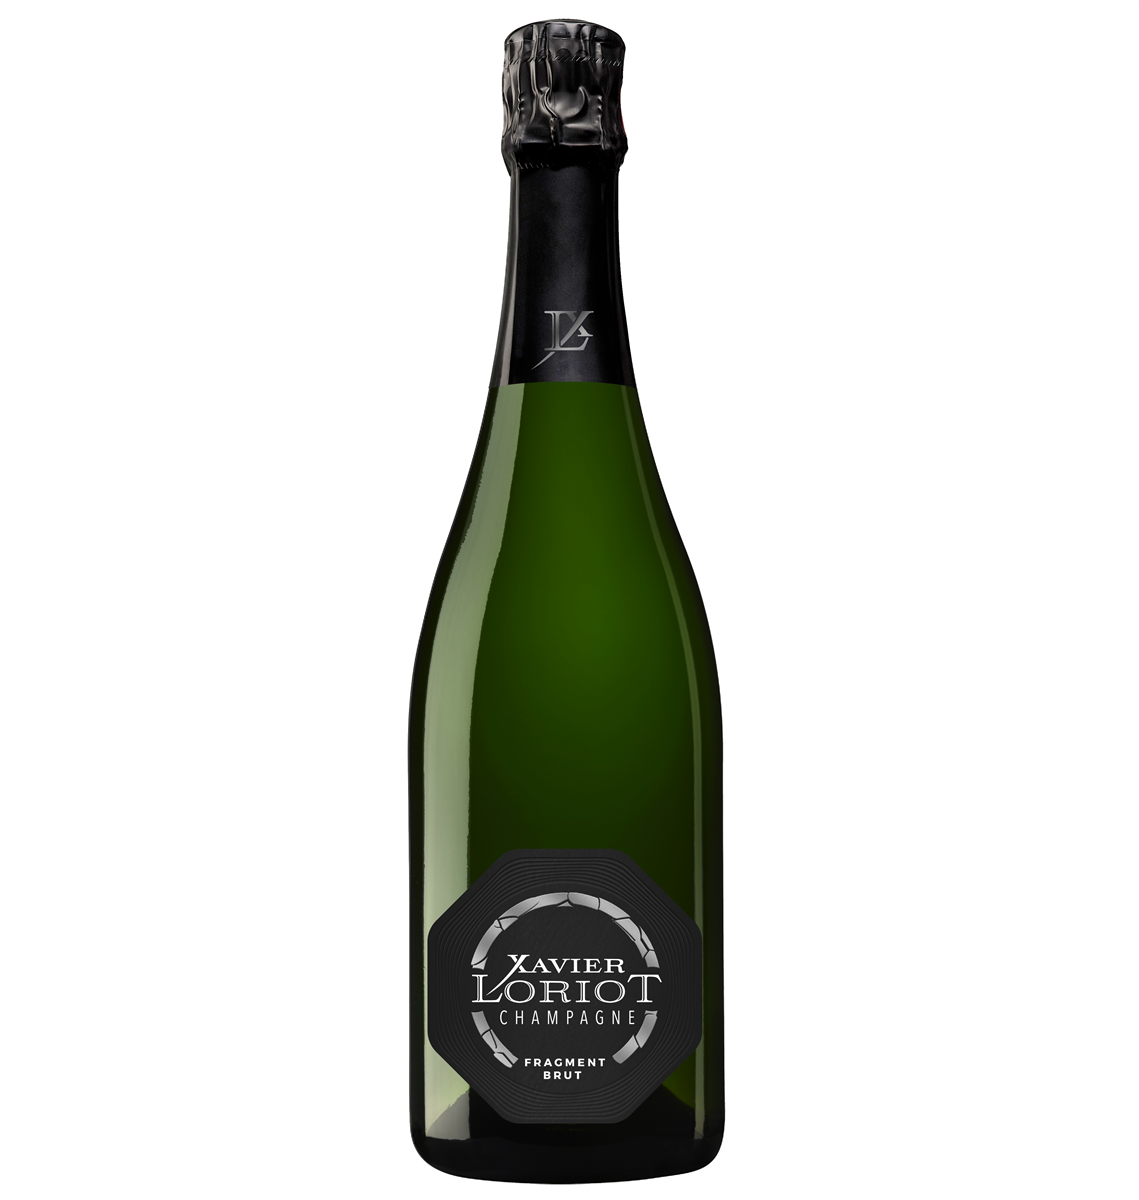 Champagne Xavier Loriot